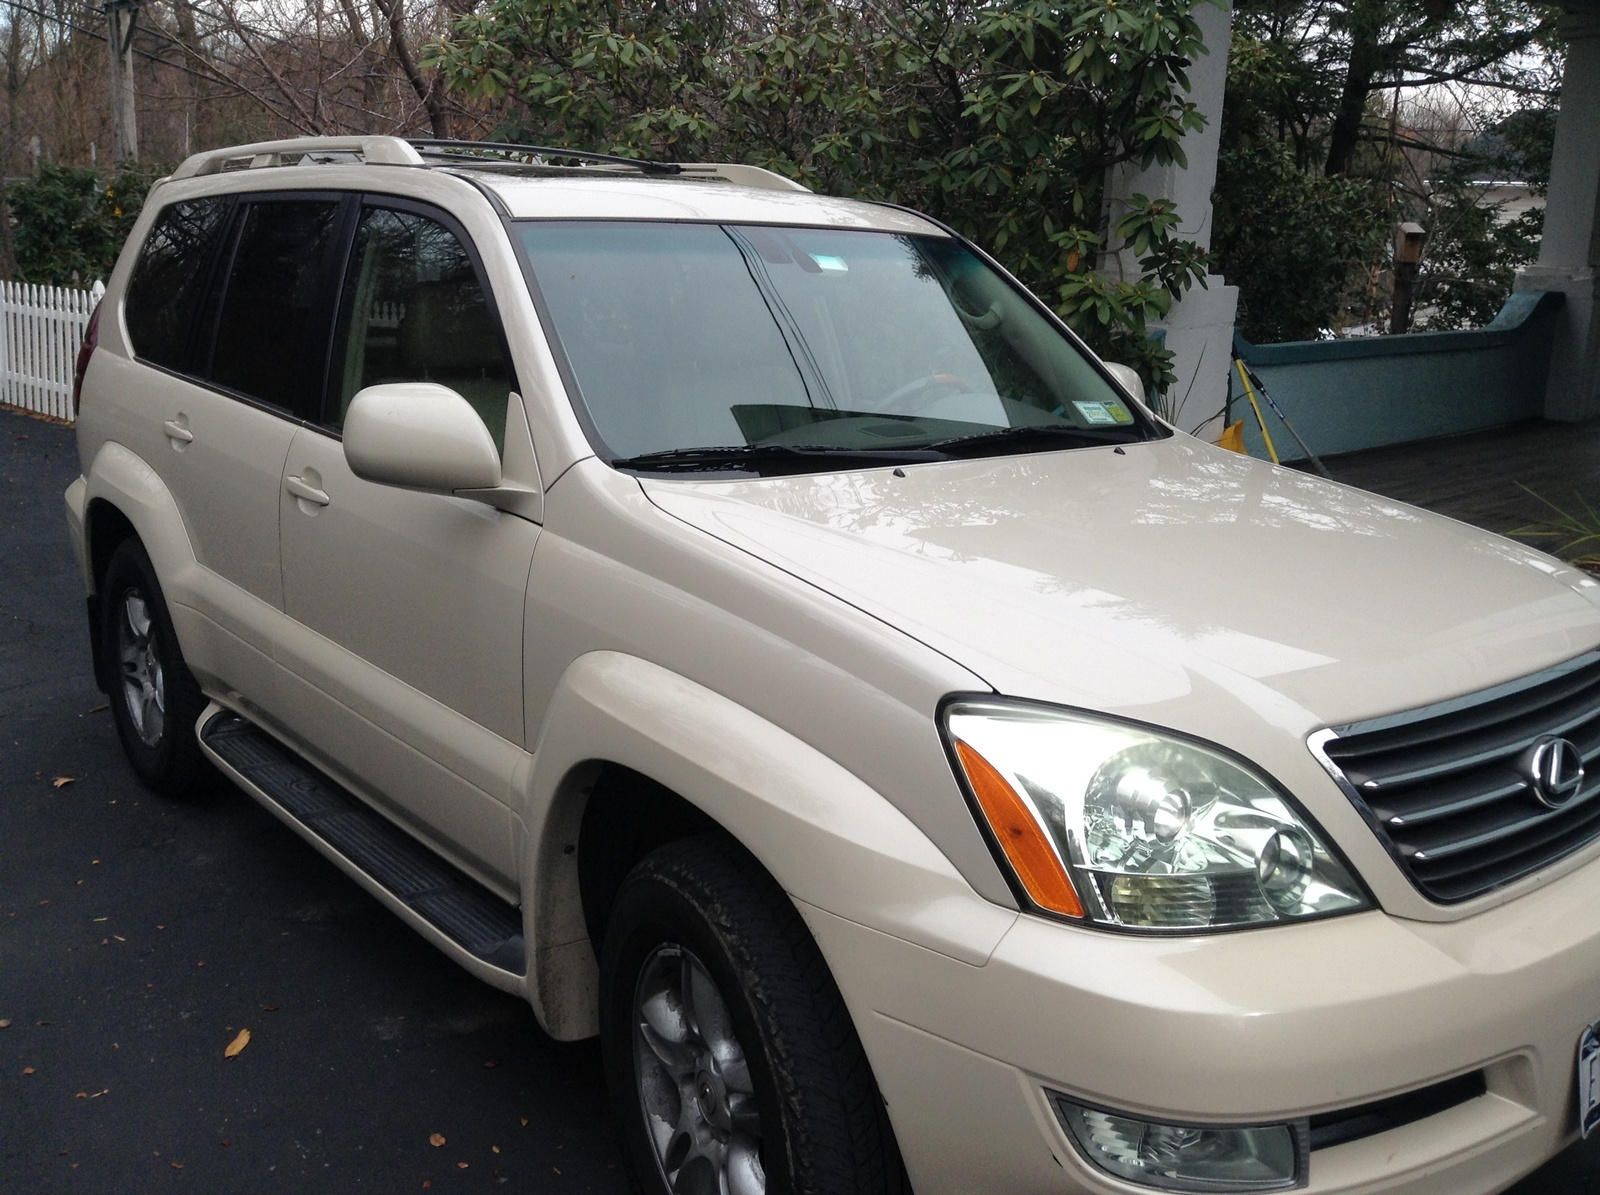 used lexus gx 470 for sale new york ny cargurus. Black Bedroom Furniture Sets. Home Design Ideas